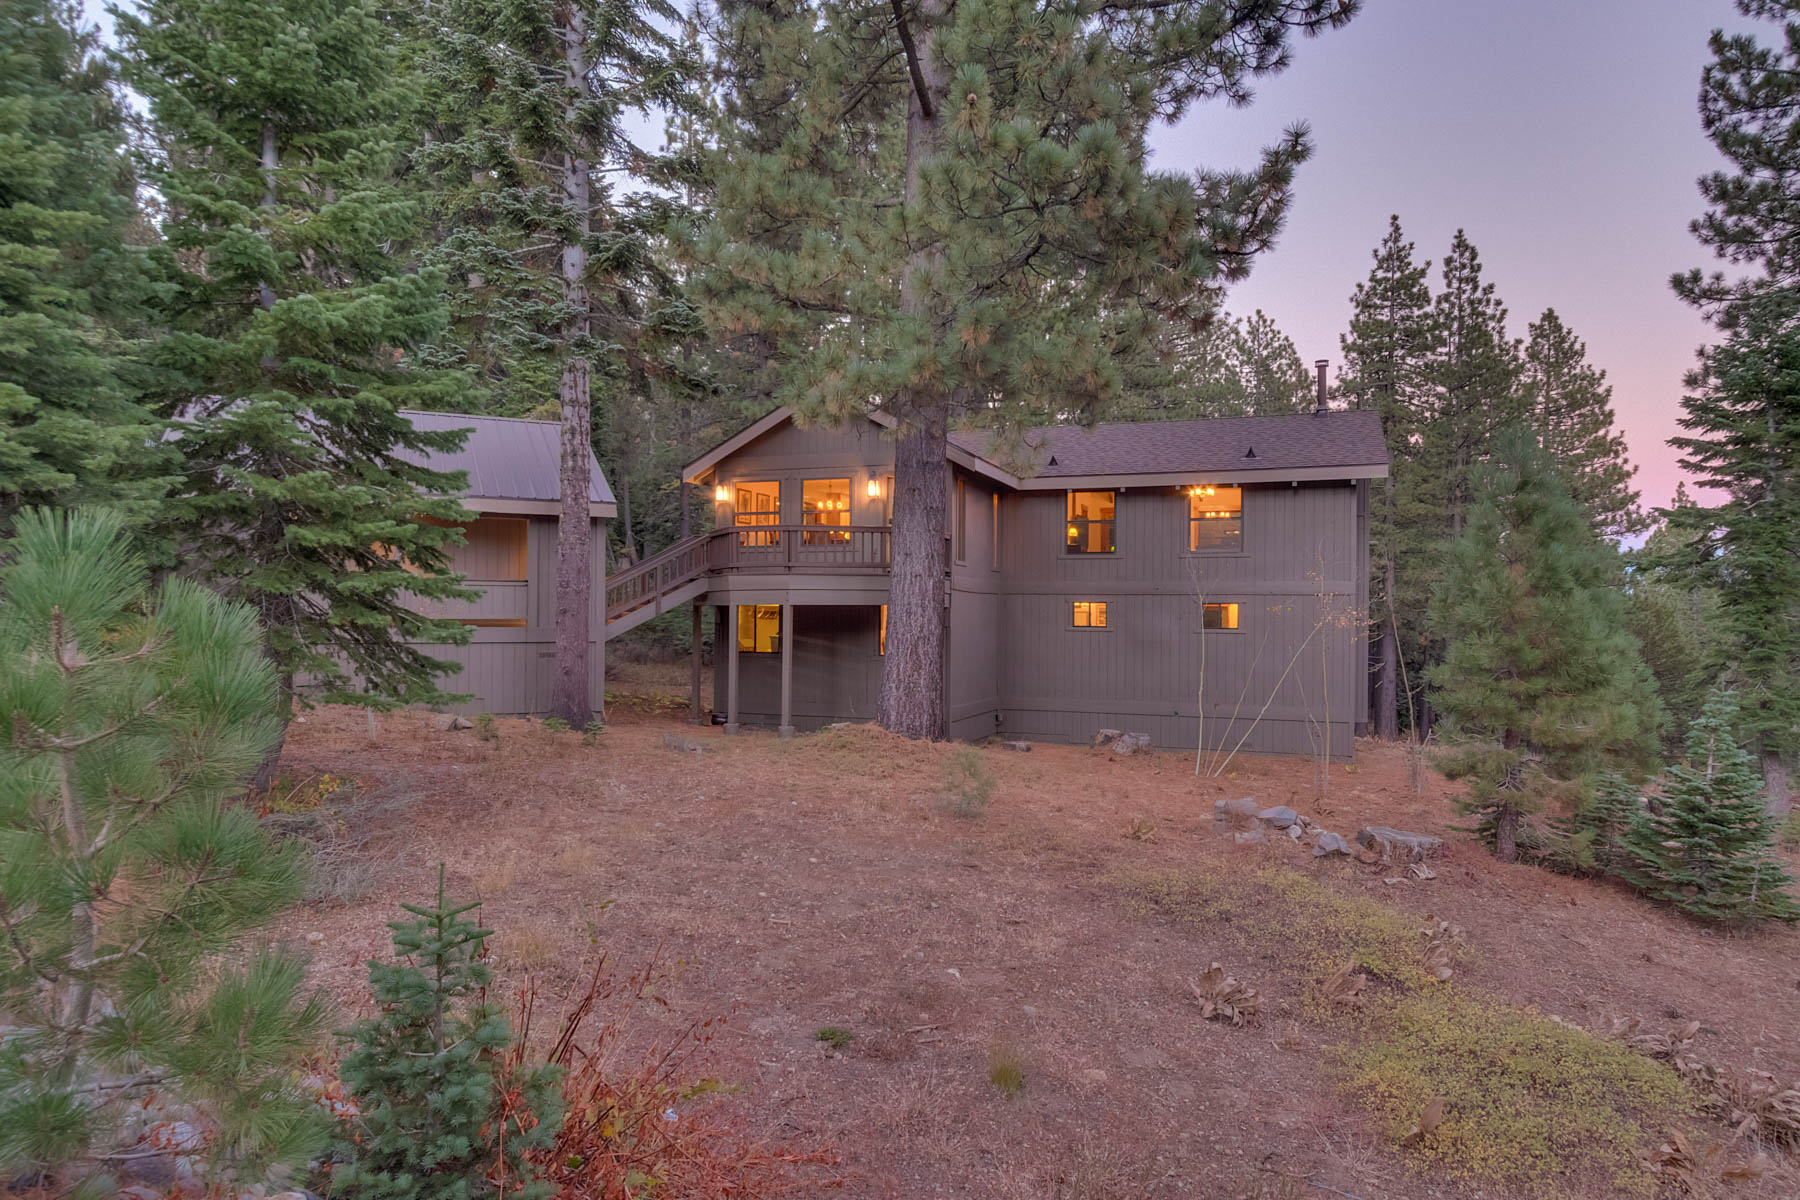 Additional photo for property listing at 4035 Zermatt Road, Tahoe City, Ca 96145 4035 Zermatt Road Tahoe City, California 96145 United States